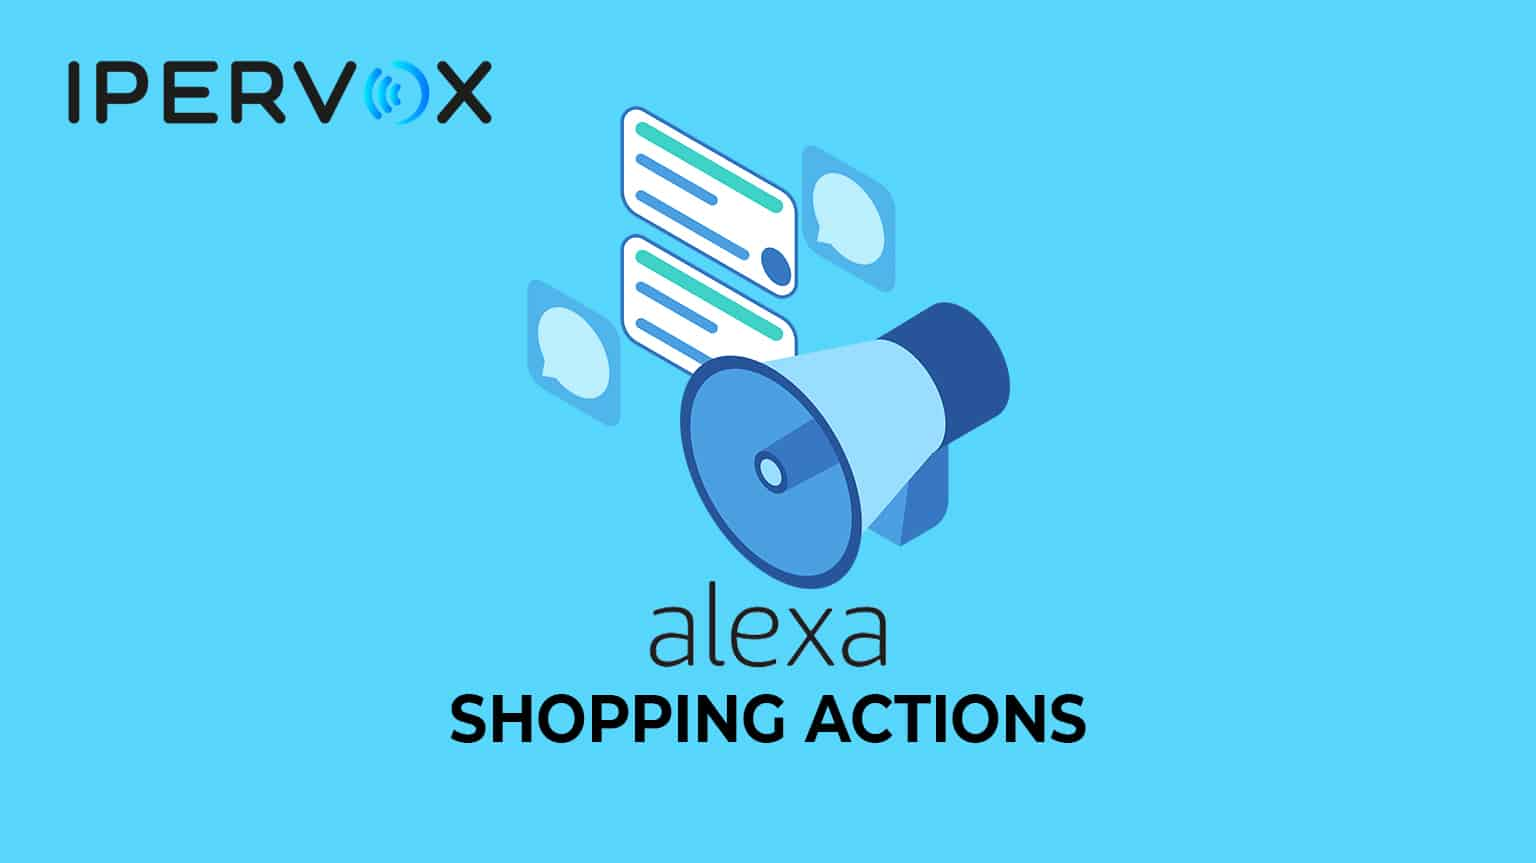 alexa shopping actions will change voice commerce